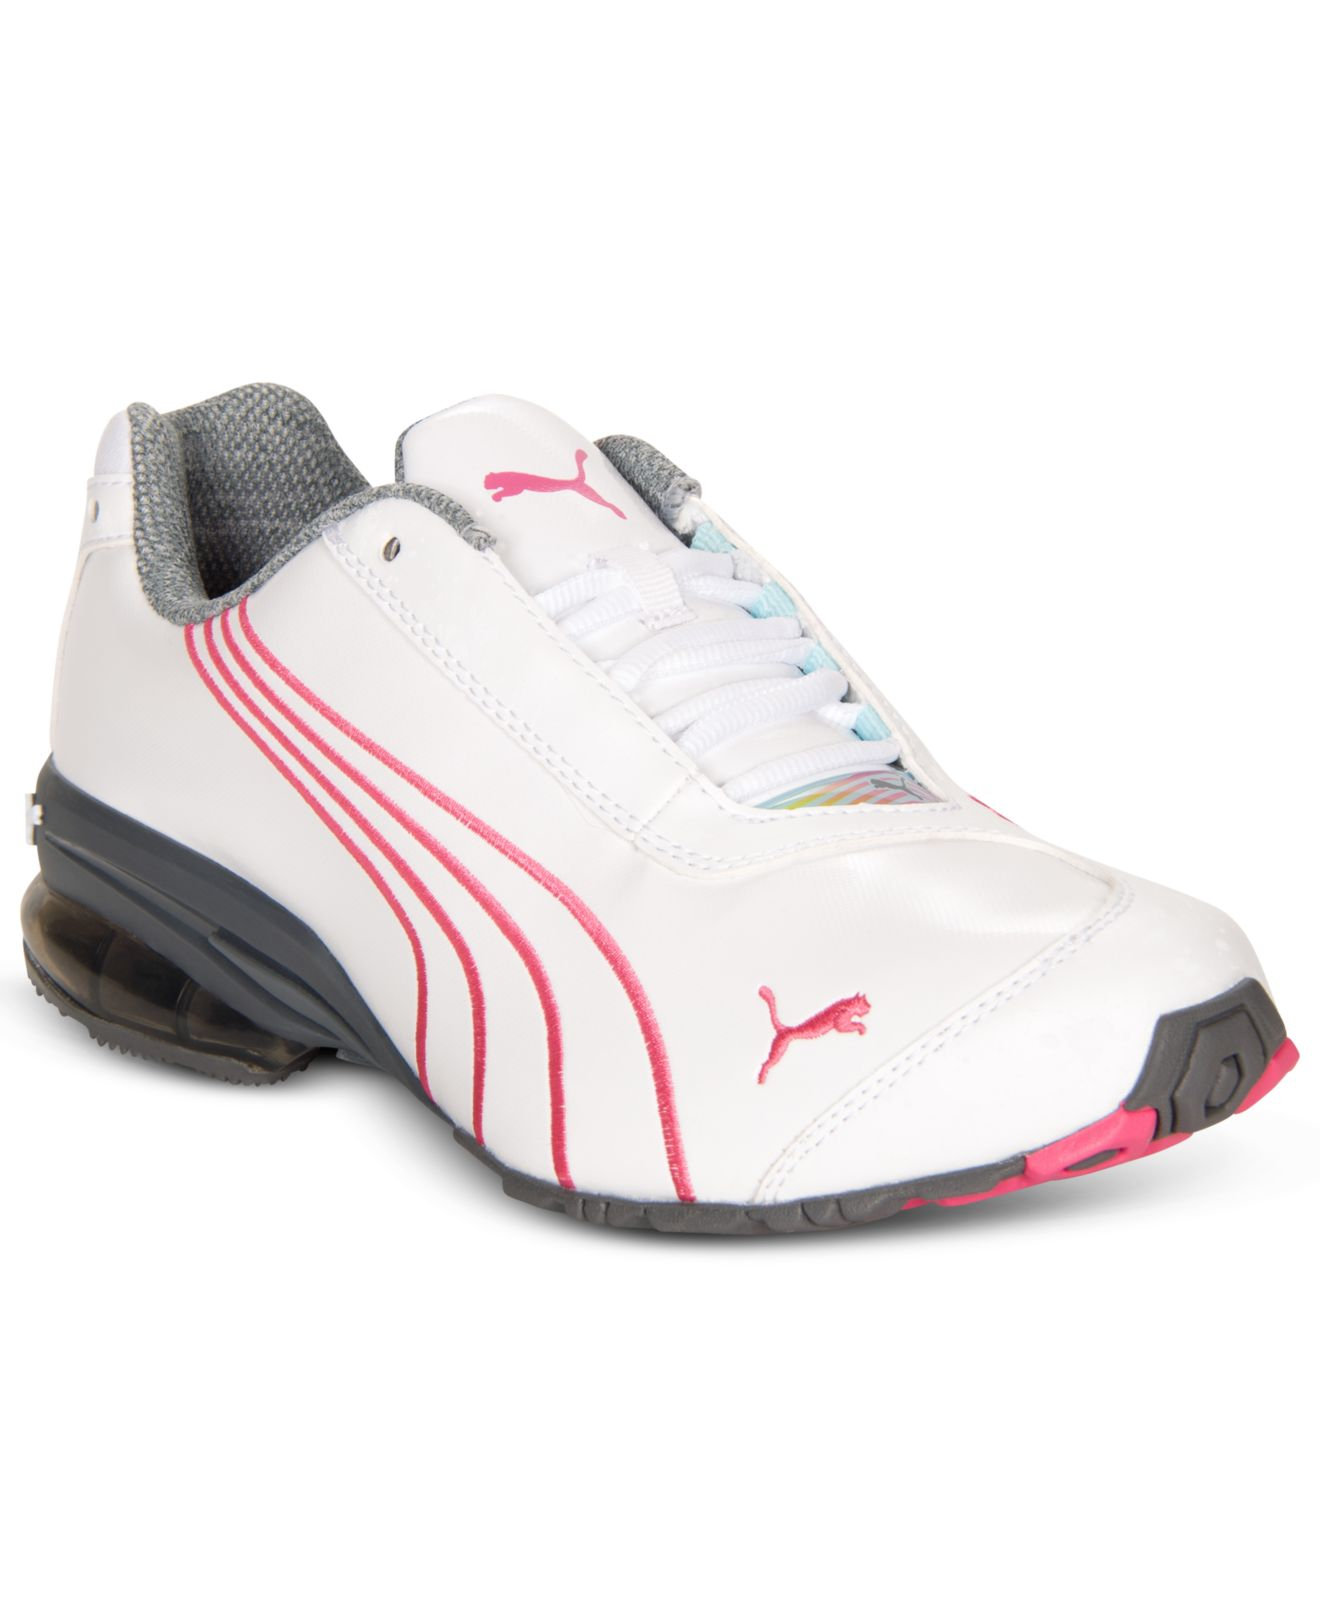 Lyst - PUMA Women S Jago 8 Sneakers From Finish Line in White 706306f97